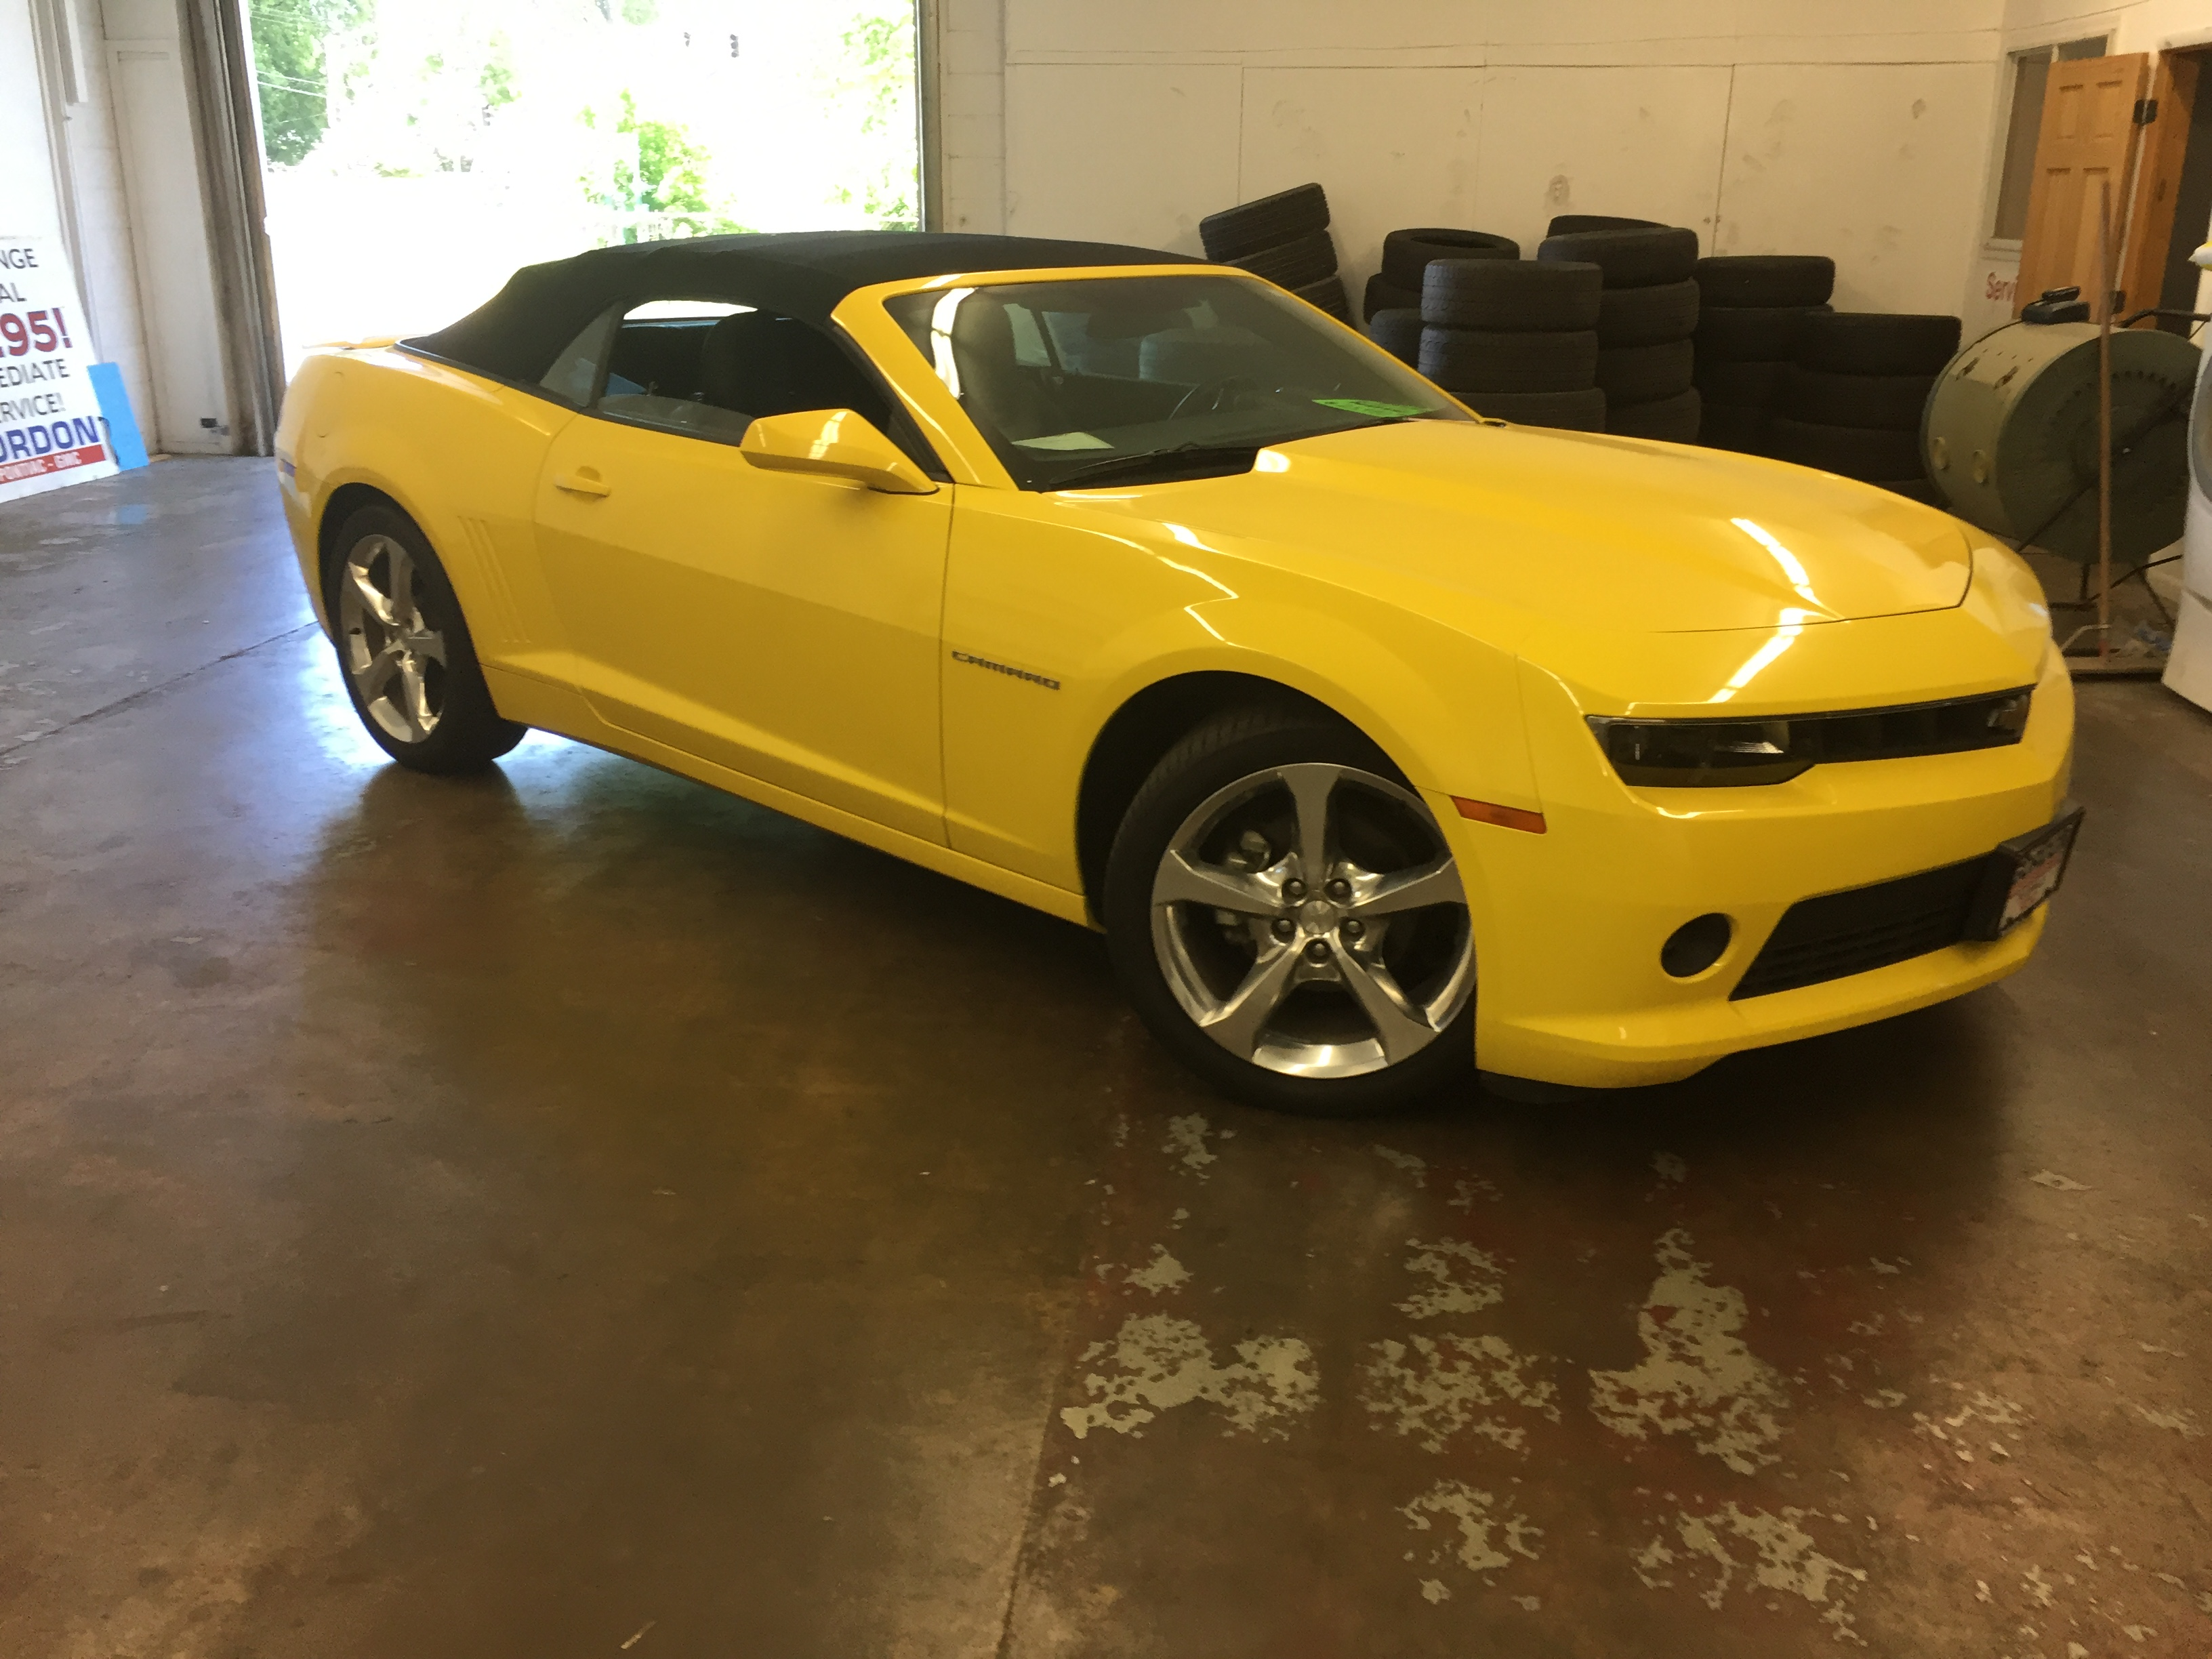 Http://217dent.com, Mobile Dent Repair, 2015 Camero, Dent on Passenger Door Body Line, Paintless Dent Repair, Springfield IL